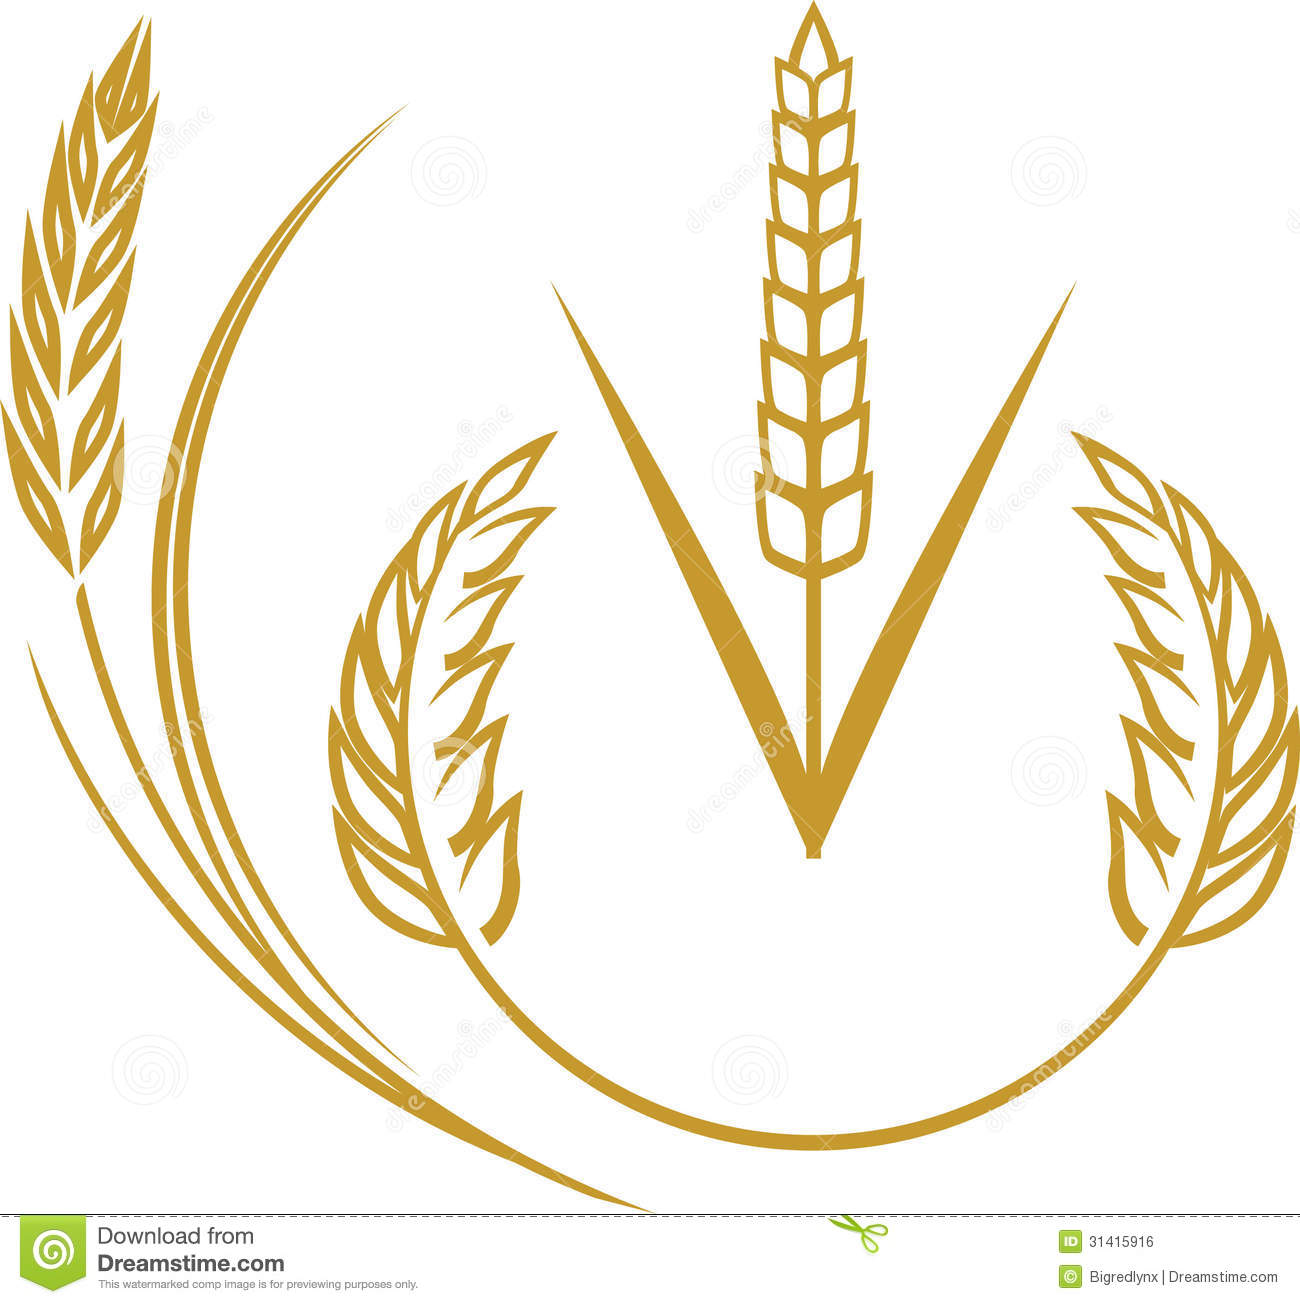 Clip Art Wheat Clip Art wheat stock illustrations 22686 elements royalty free image